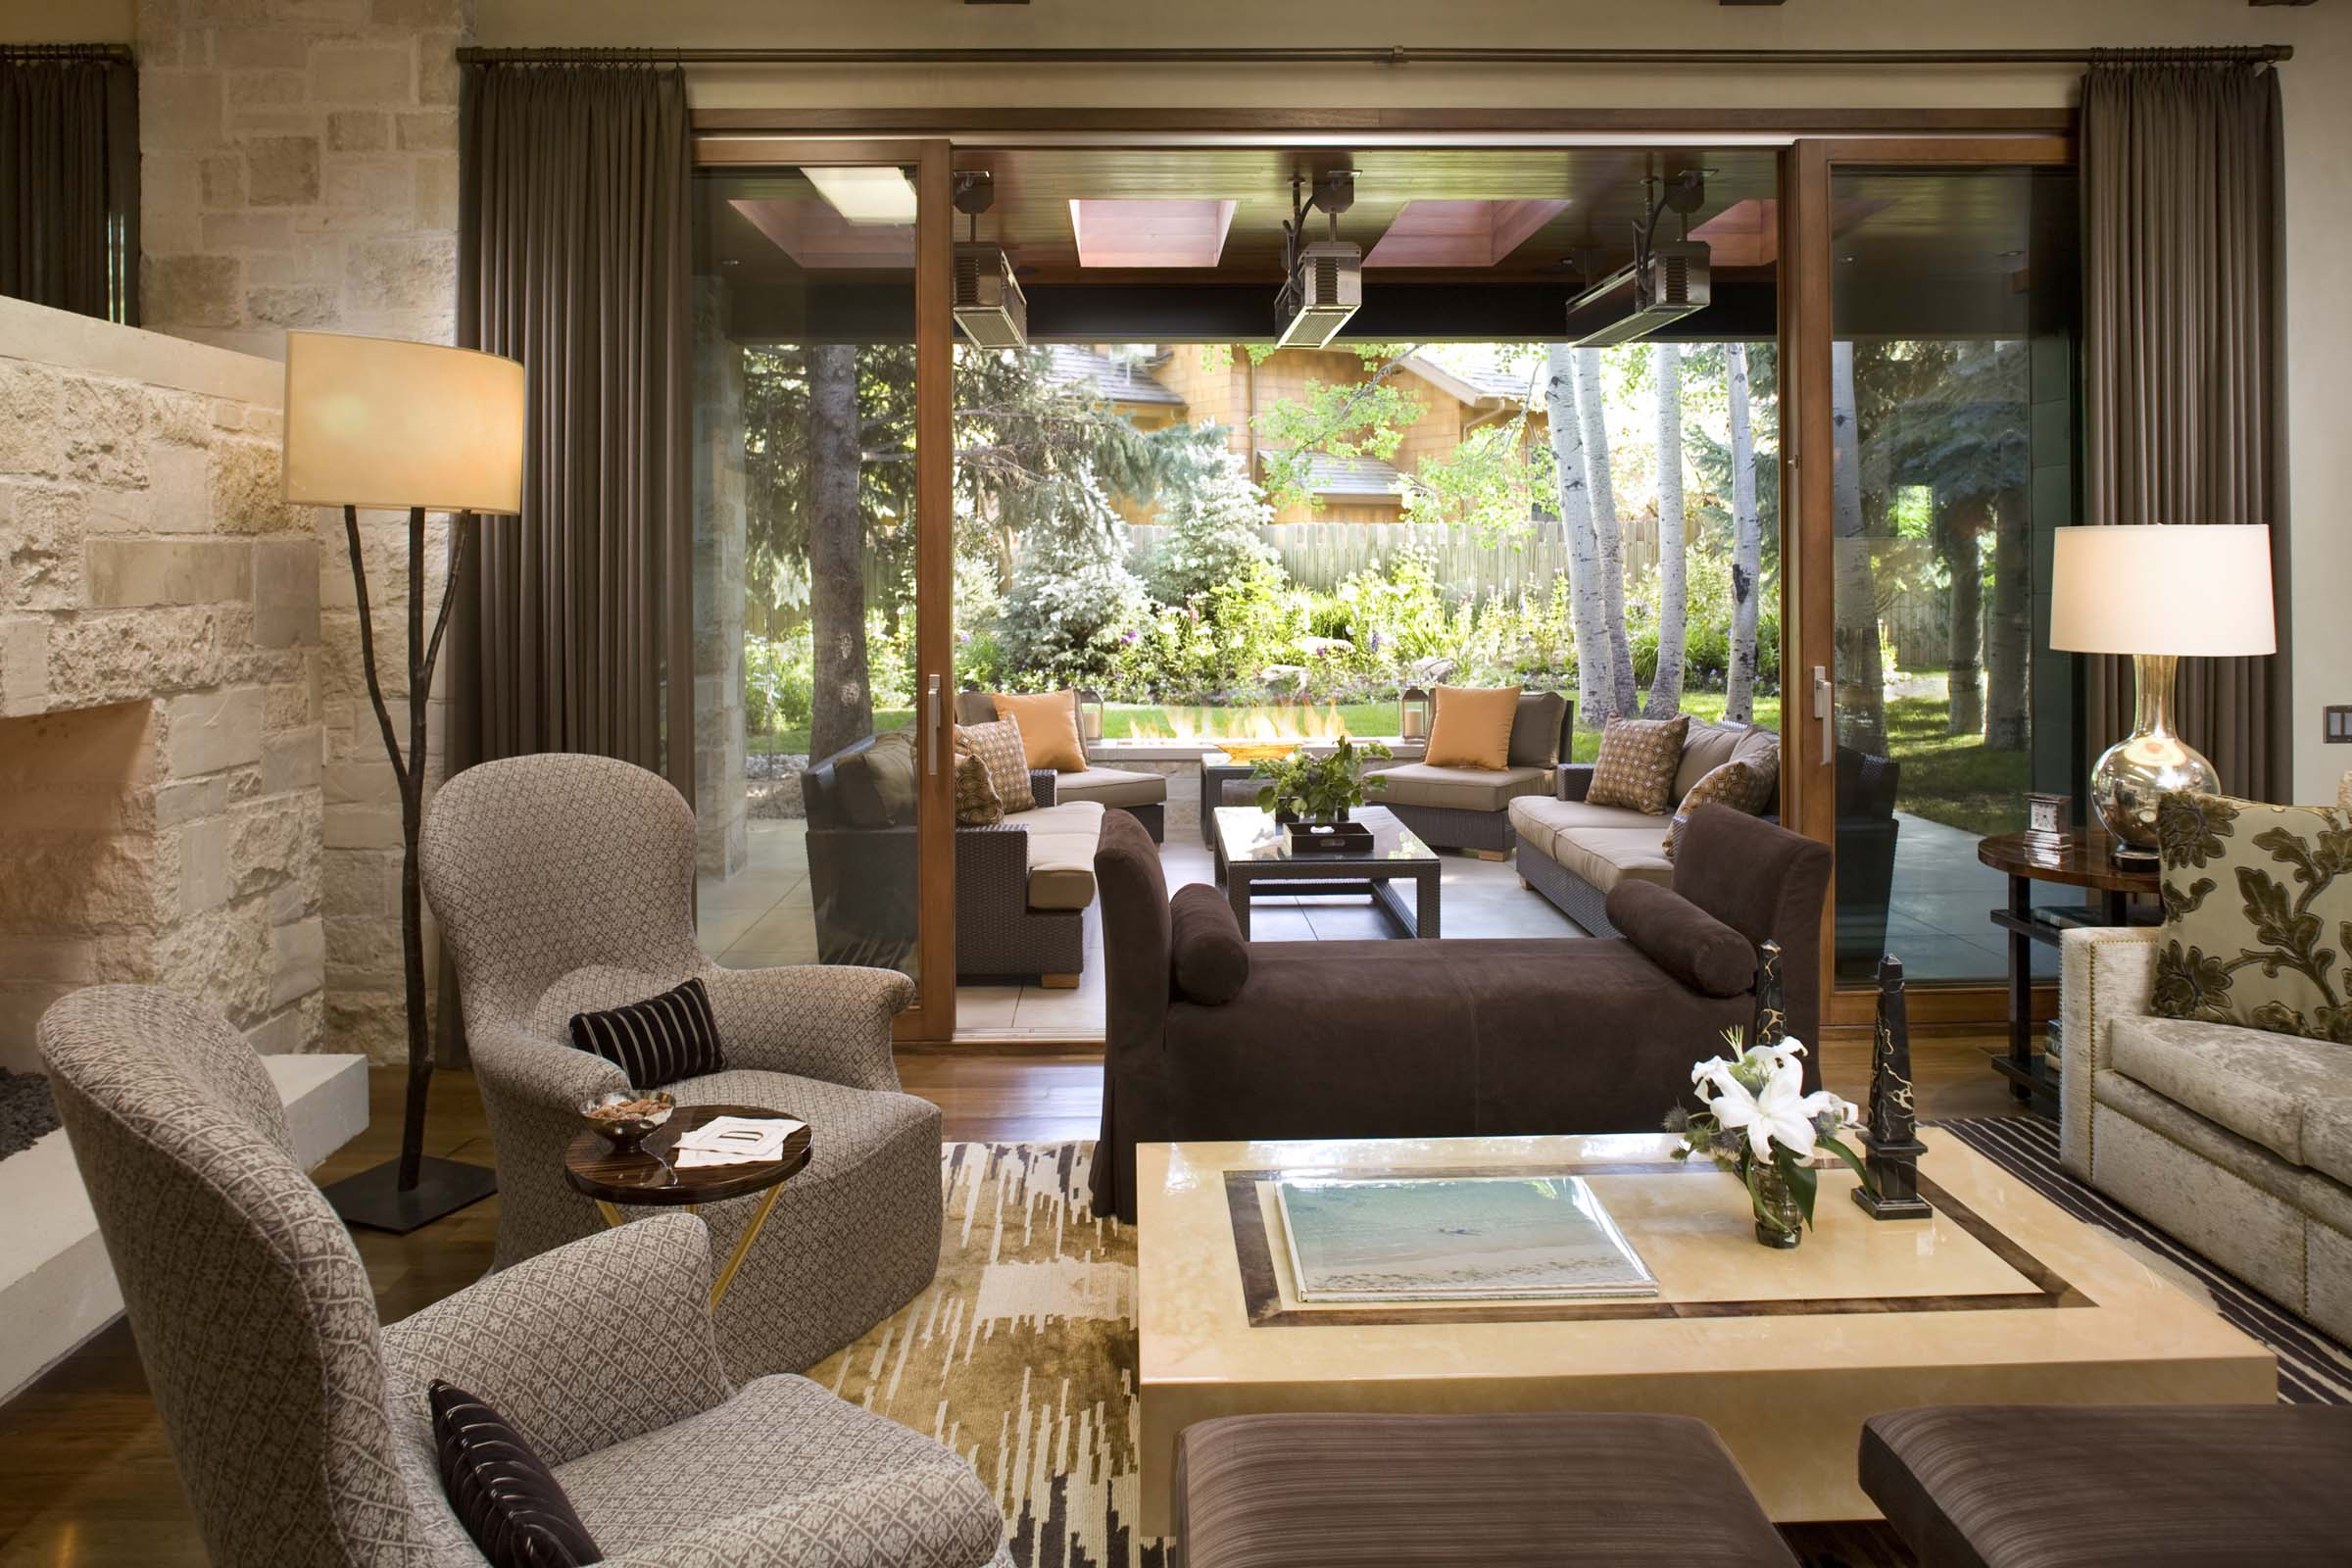 5 Tips To Make Your Home Look Like It's Done By An Interior Designer